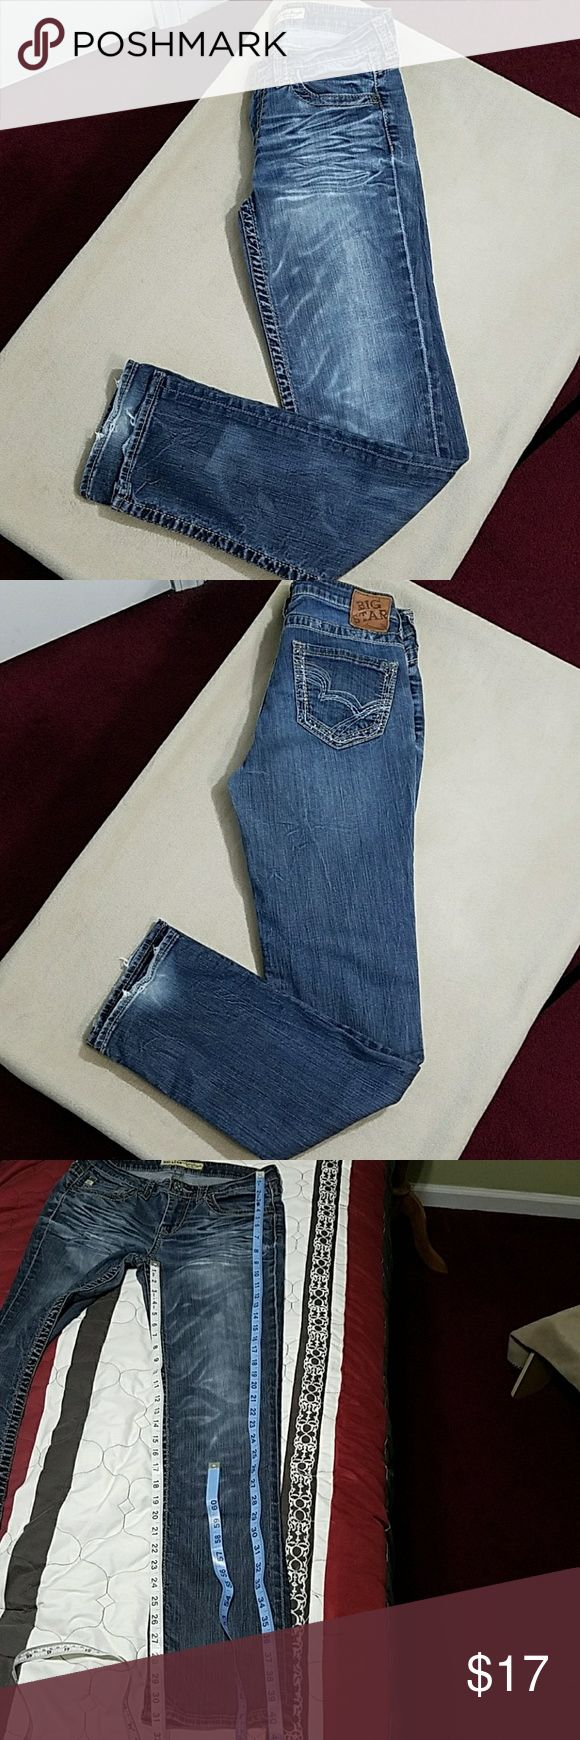 Big Star Kayla Straight mid rise fit jeans Big Star Kayla Straight mid rise fit jeans.  In good condition except at hem as shown in pictures.  Length is about 40 inches.  Inseam is about 31 inches.  Waist is about 28 inches. Big Star Jeans